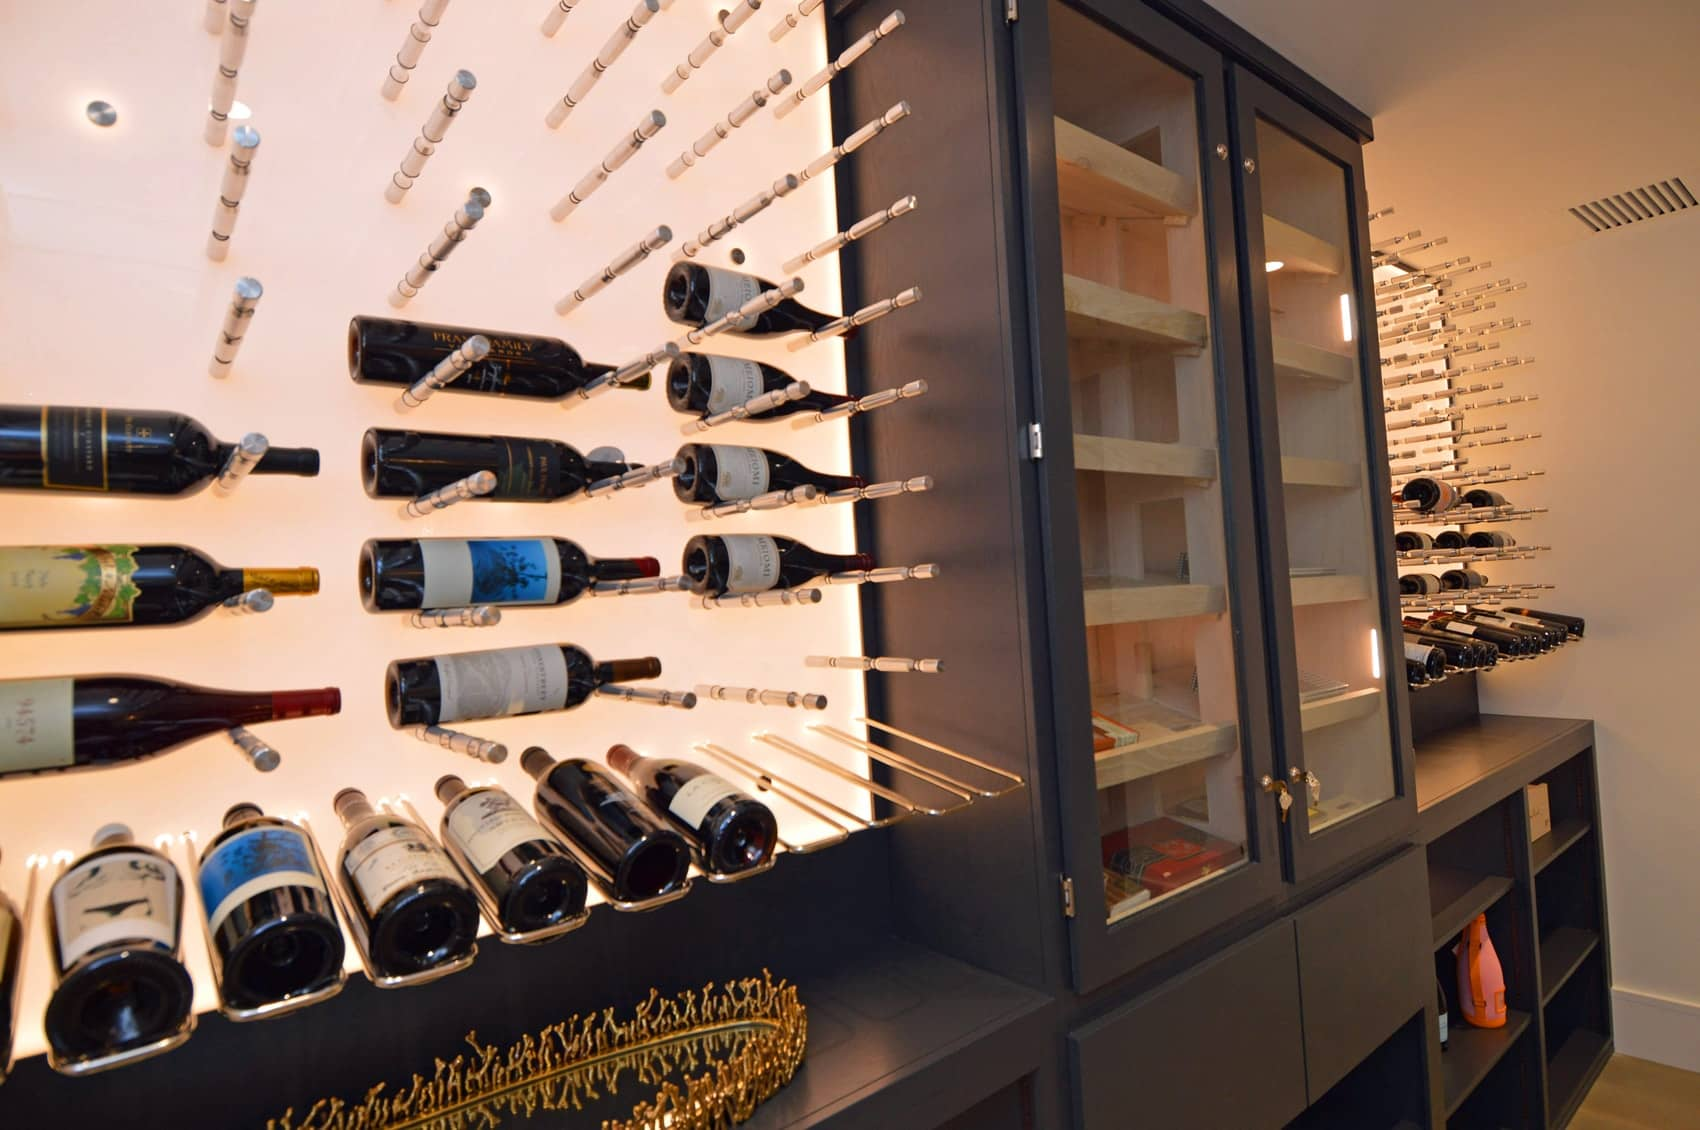 LED bulbs behind the white acrylic panel gives a subtle illumination for the wine pegs.